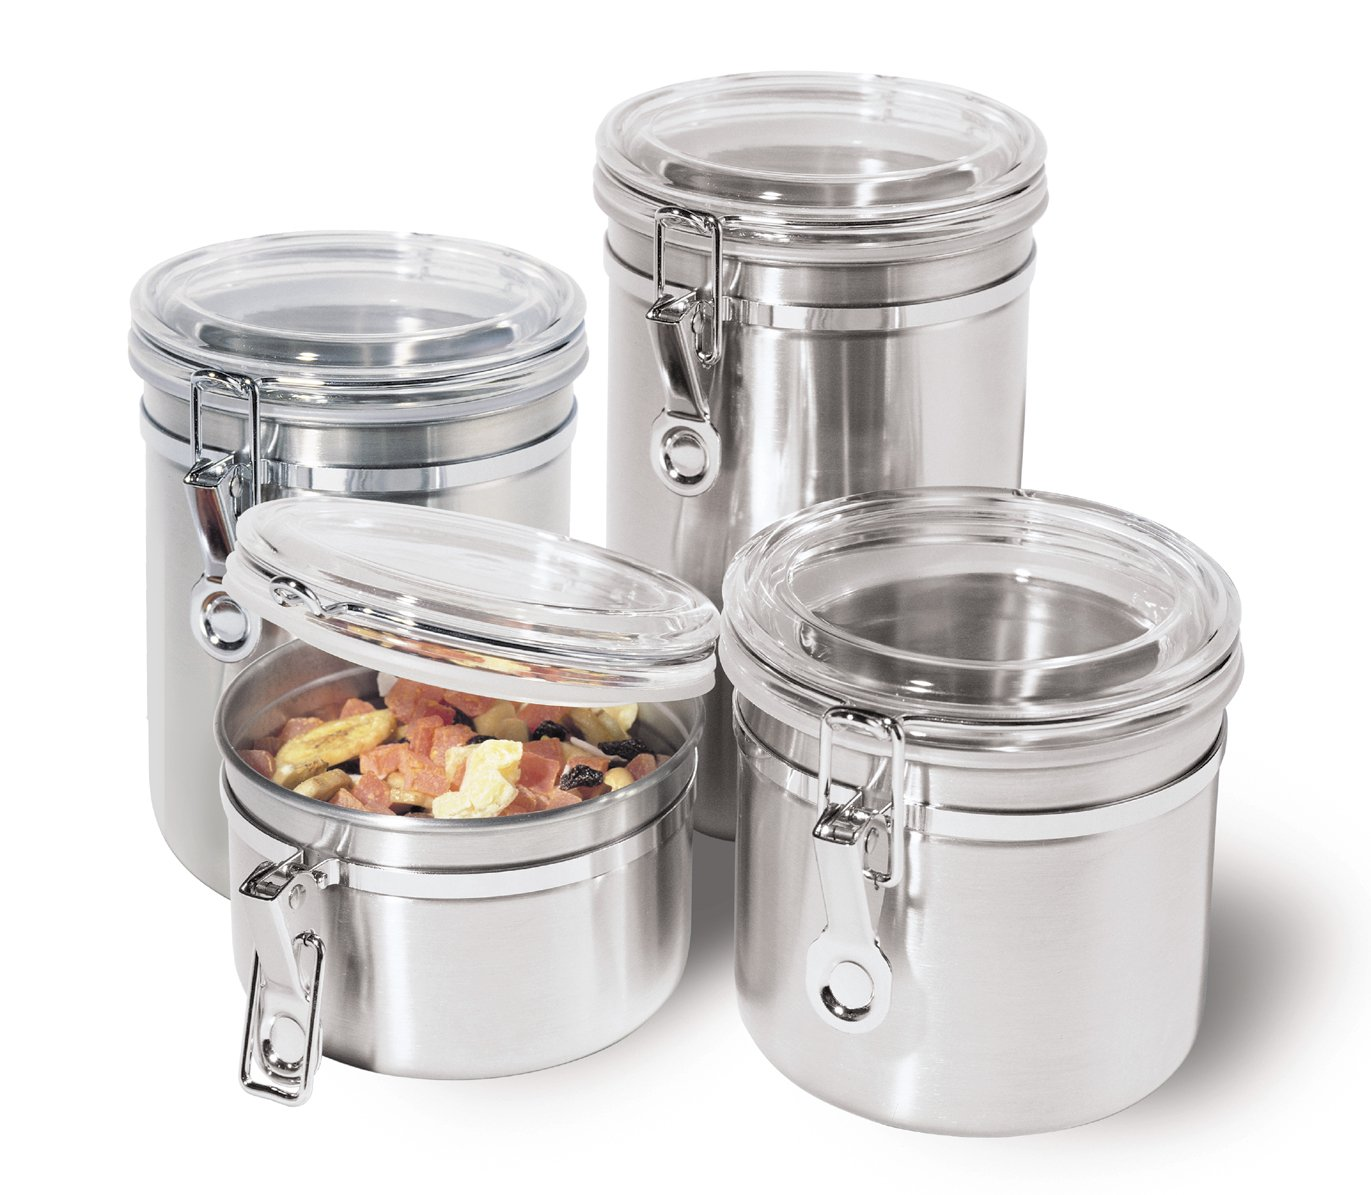 Amazoncom Oggi 4 Piece Stainless Steel Canister Set with Acrylic